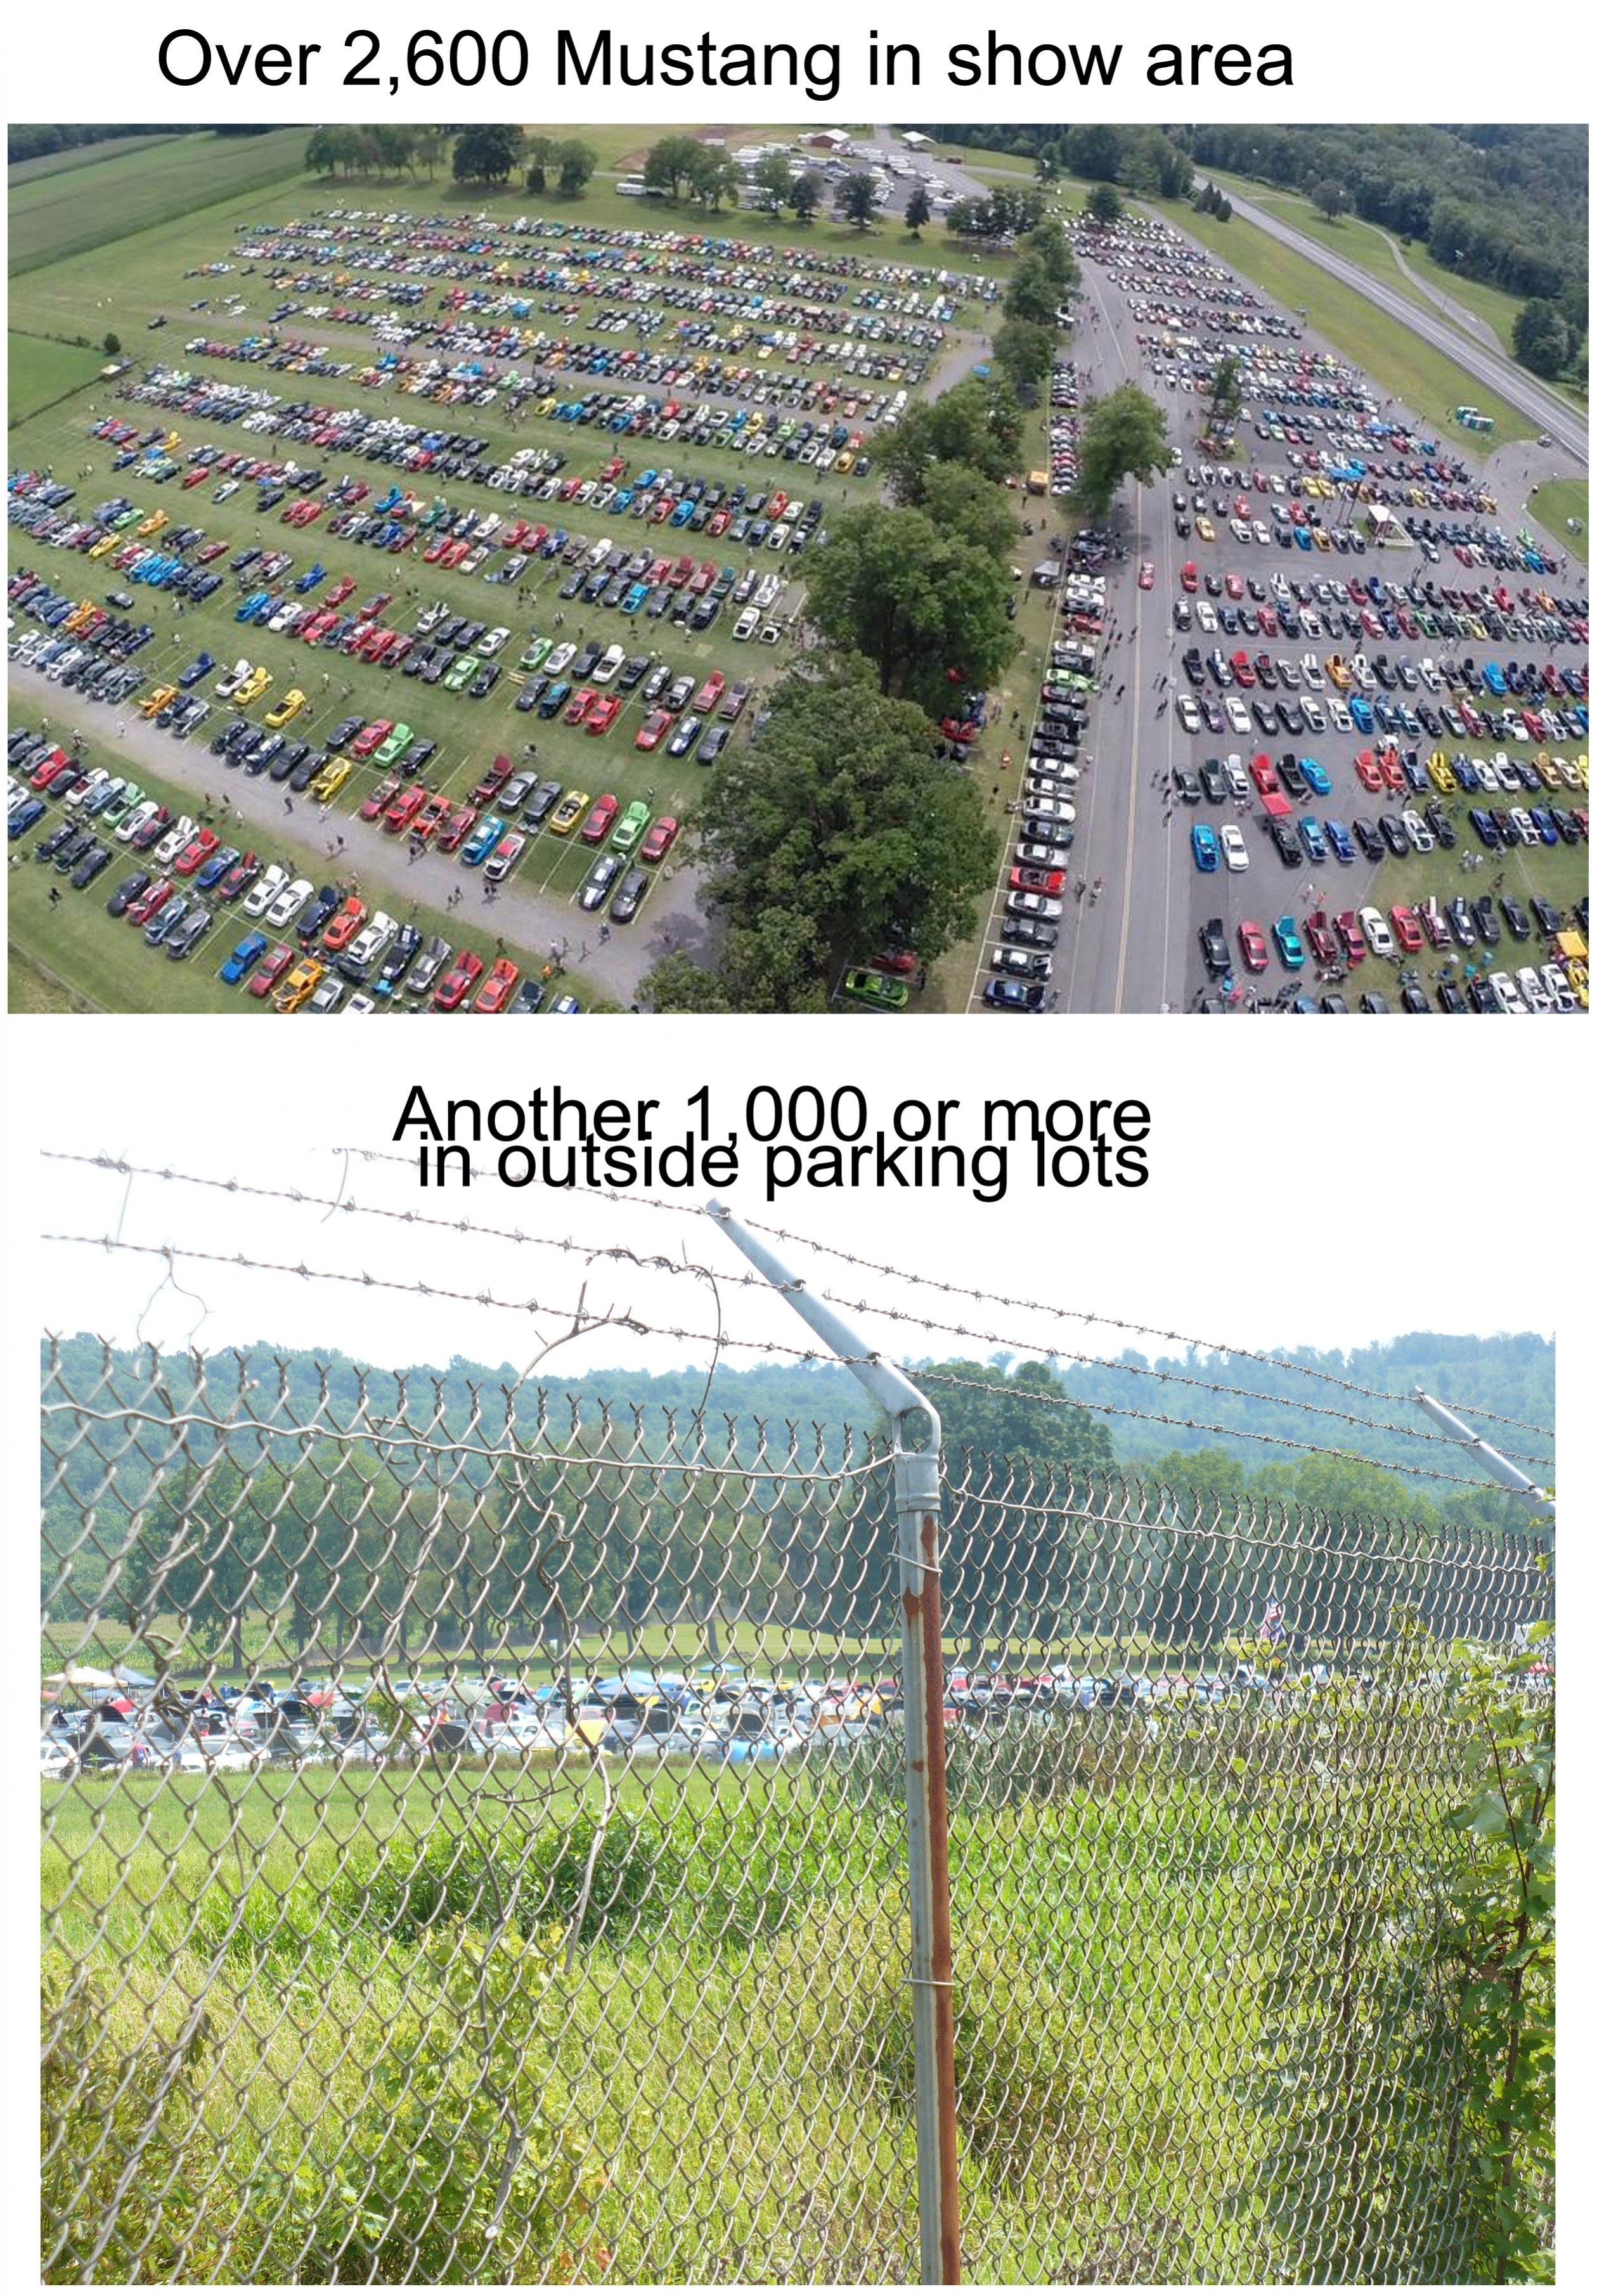 Click image for larger version  Name:Ariel and fence photo.jpg Views:49 Size:1.82 MB ID:188519